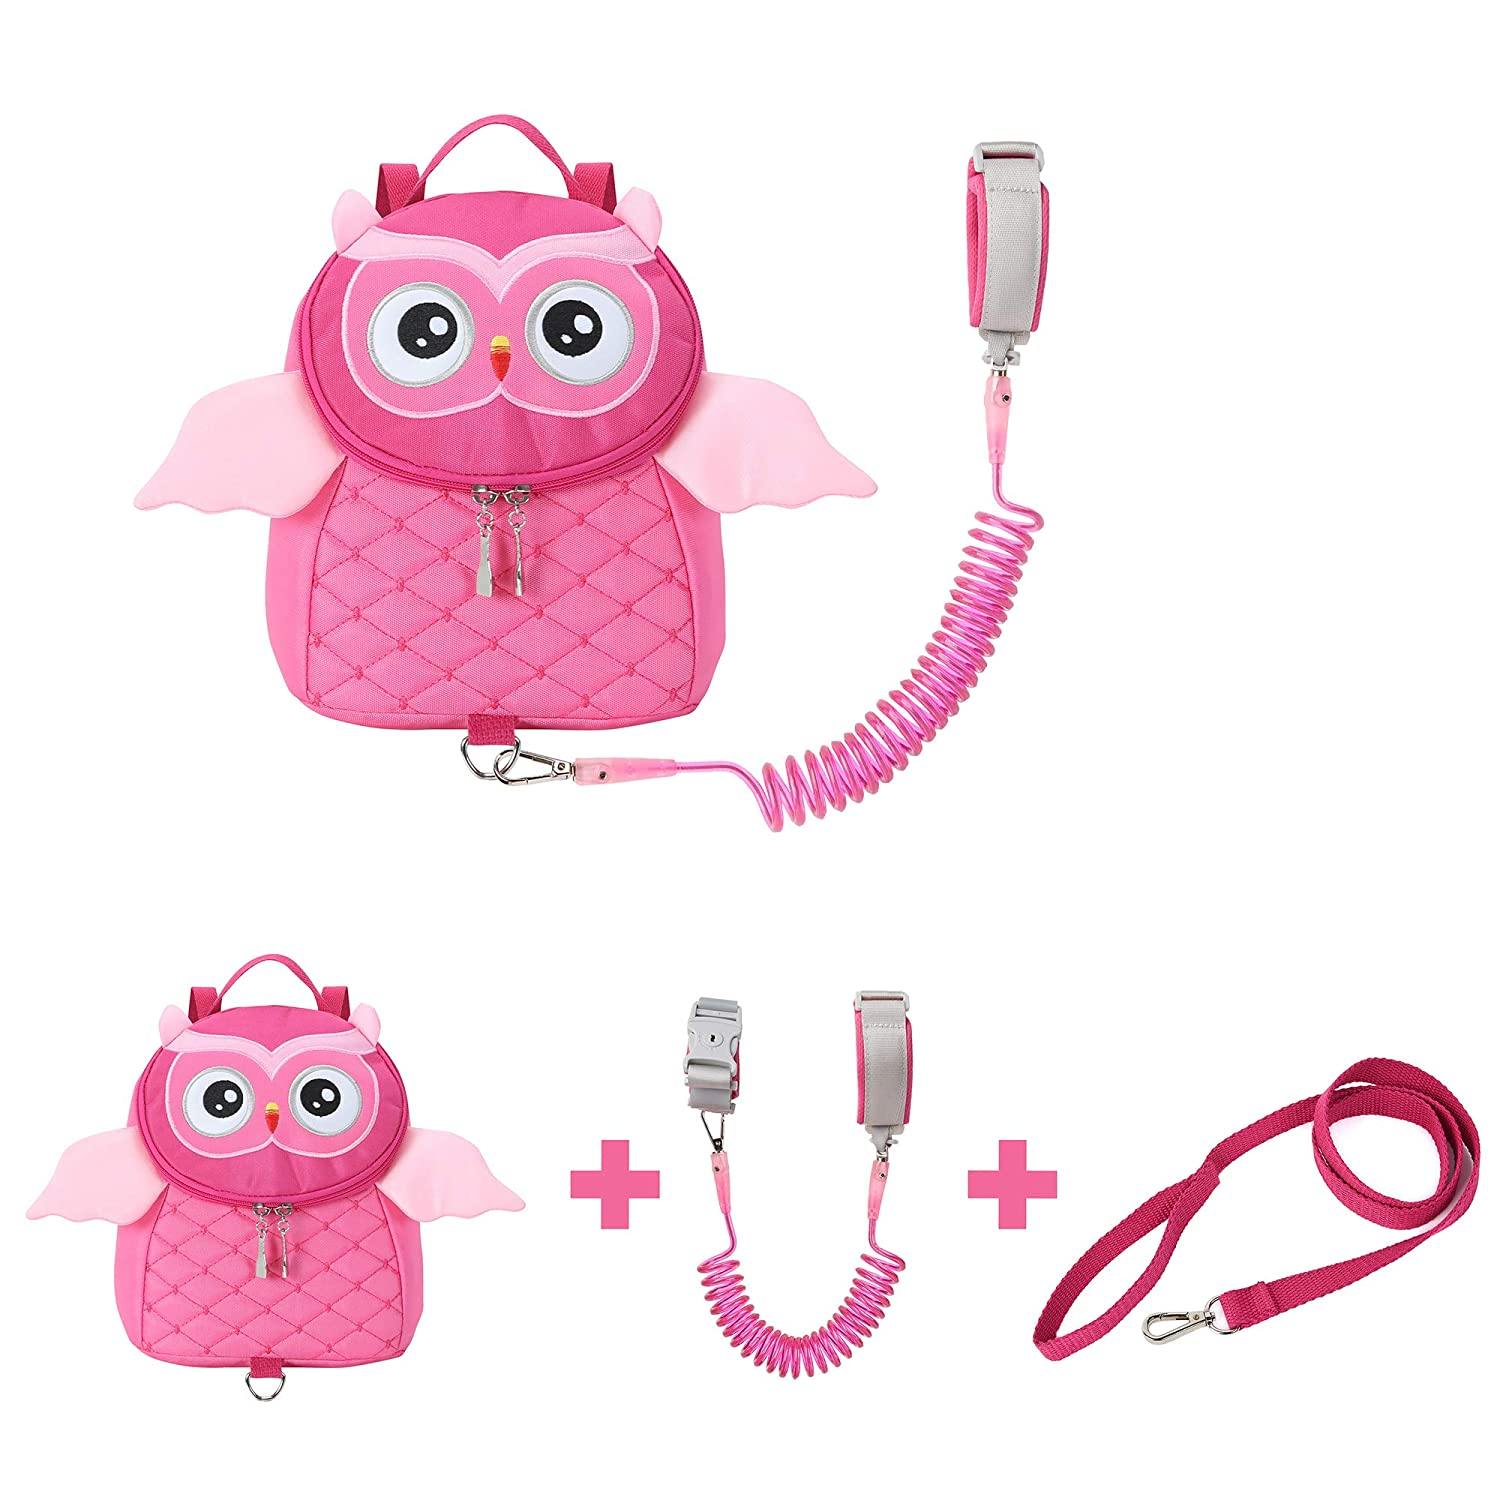 EPLAZA Toddler Leashes Owl-Like Backpacks with Anti Lost Wrist Link Wristband for 1.5 to 3 Years Kids Girls Boys Safety (Owl Rose)